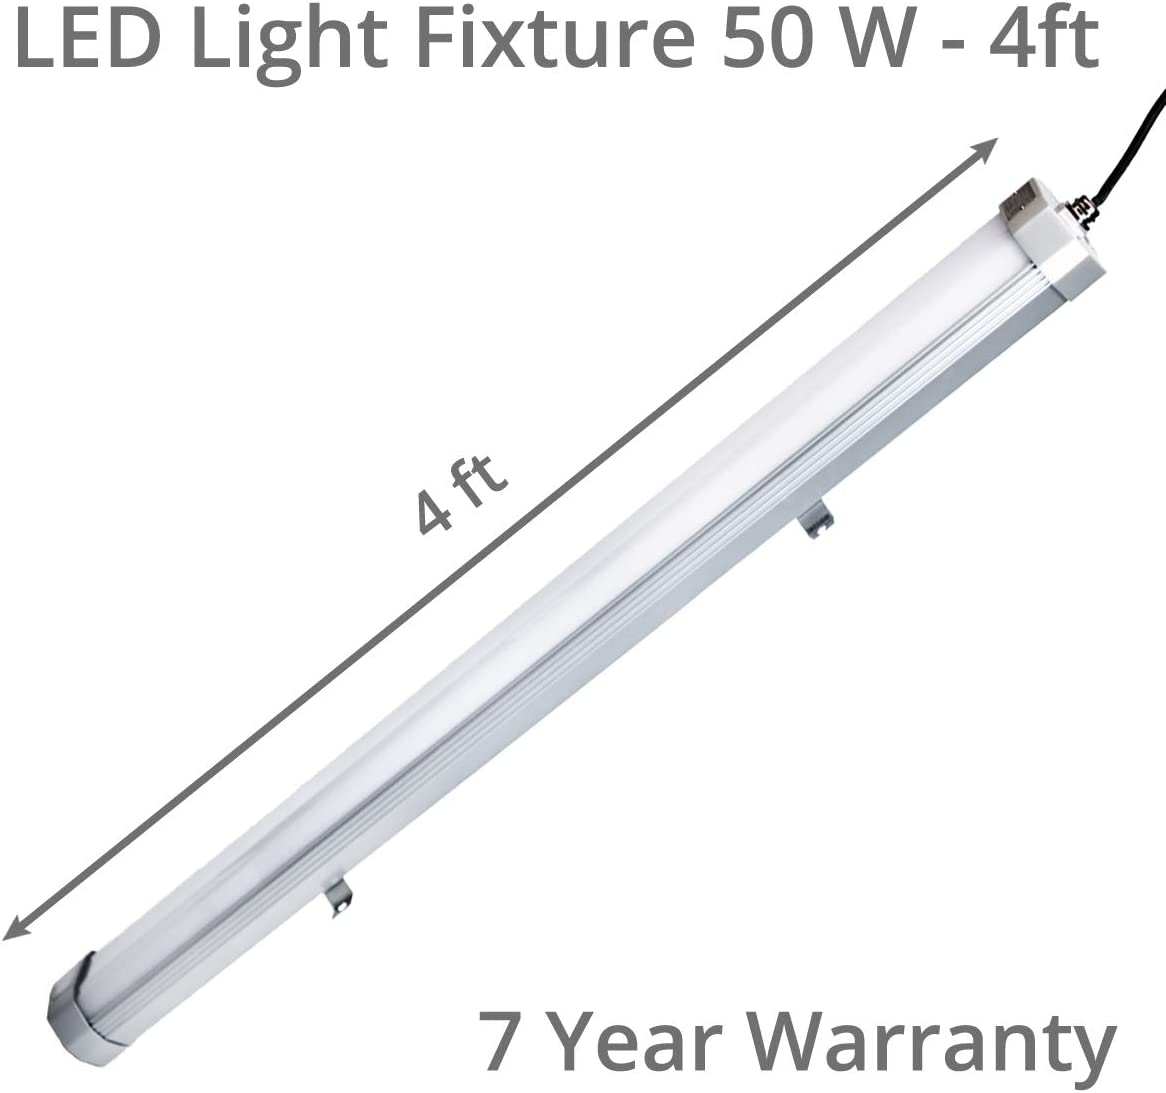 4ft - 50W Perfect for Indoor /& Outdoor 6720 Lumens Hazardous Location Linear Lighting LED Light Fixture 5 Year Warranty Available in 2ft /& 4ft SurplusLighting LZE Division II Class I